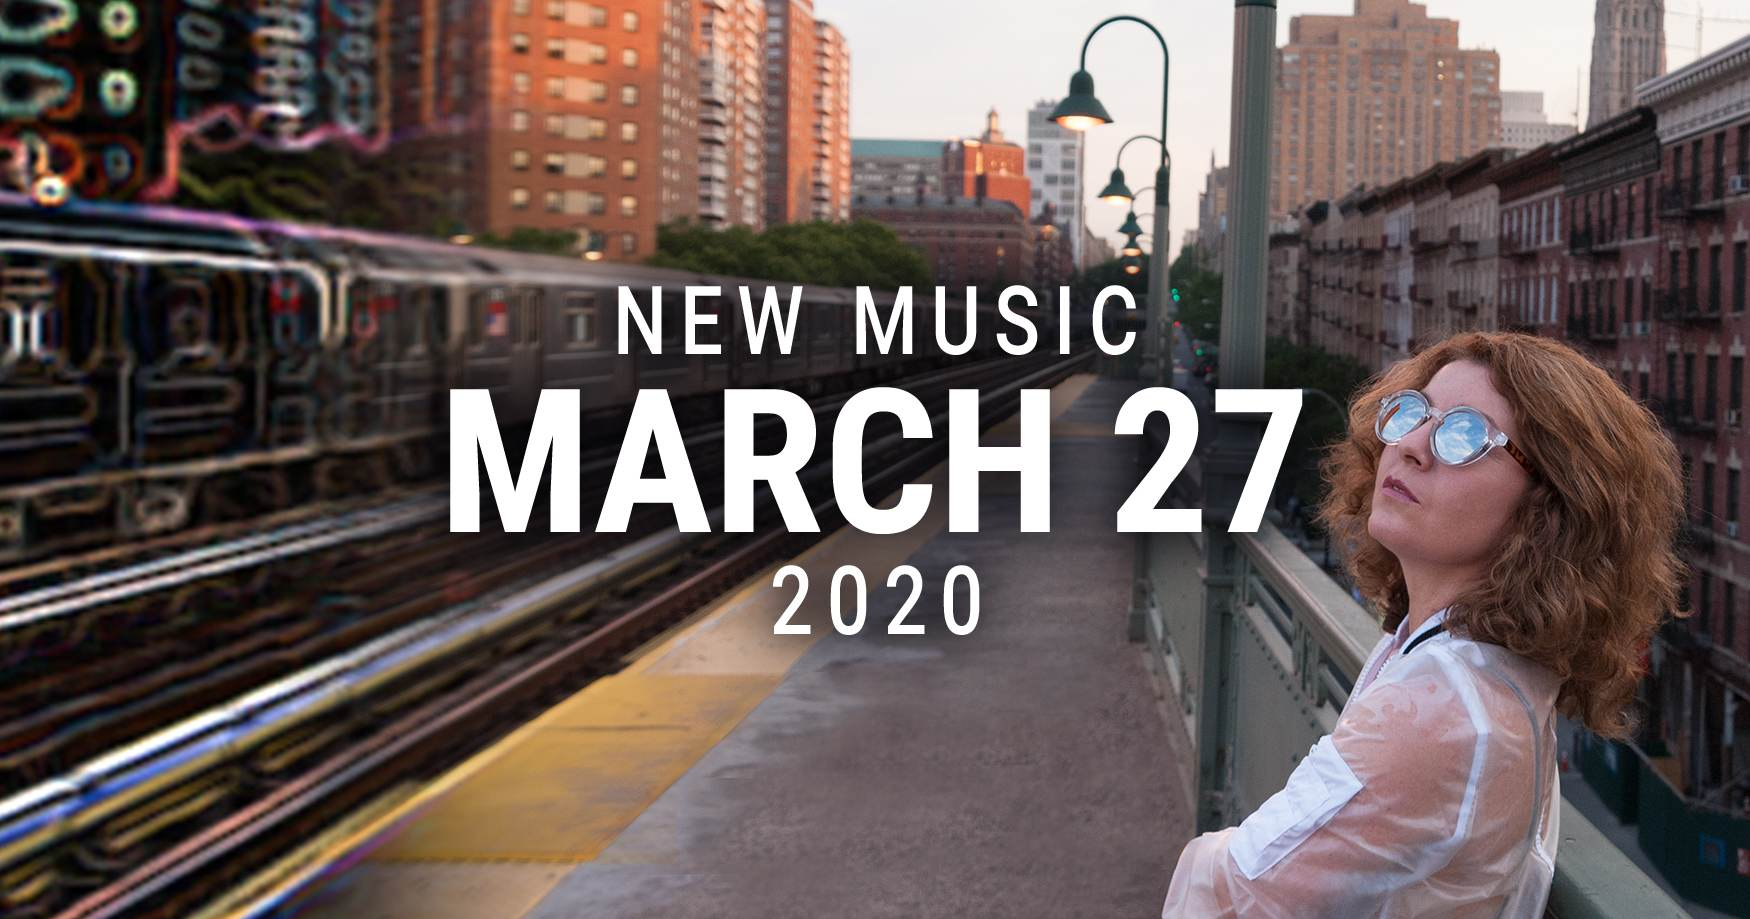 New Music March 27 2020